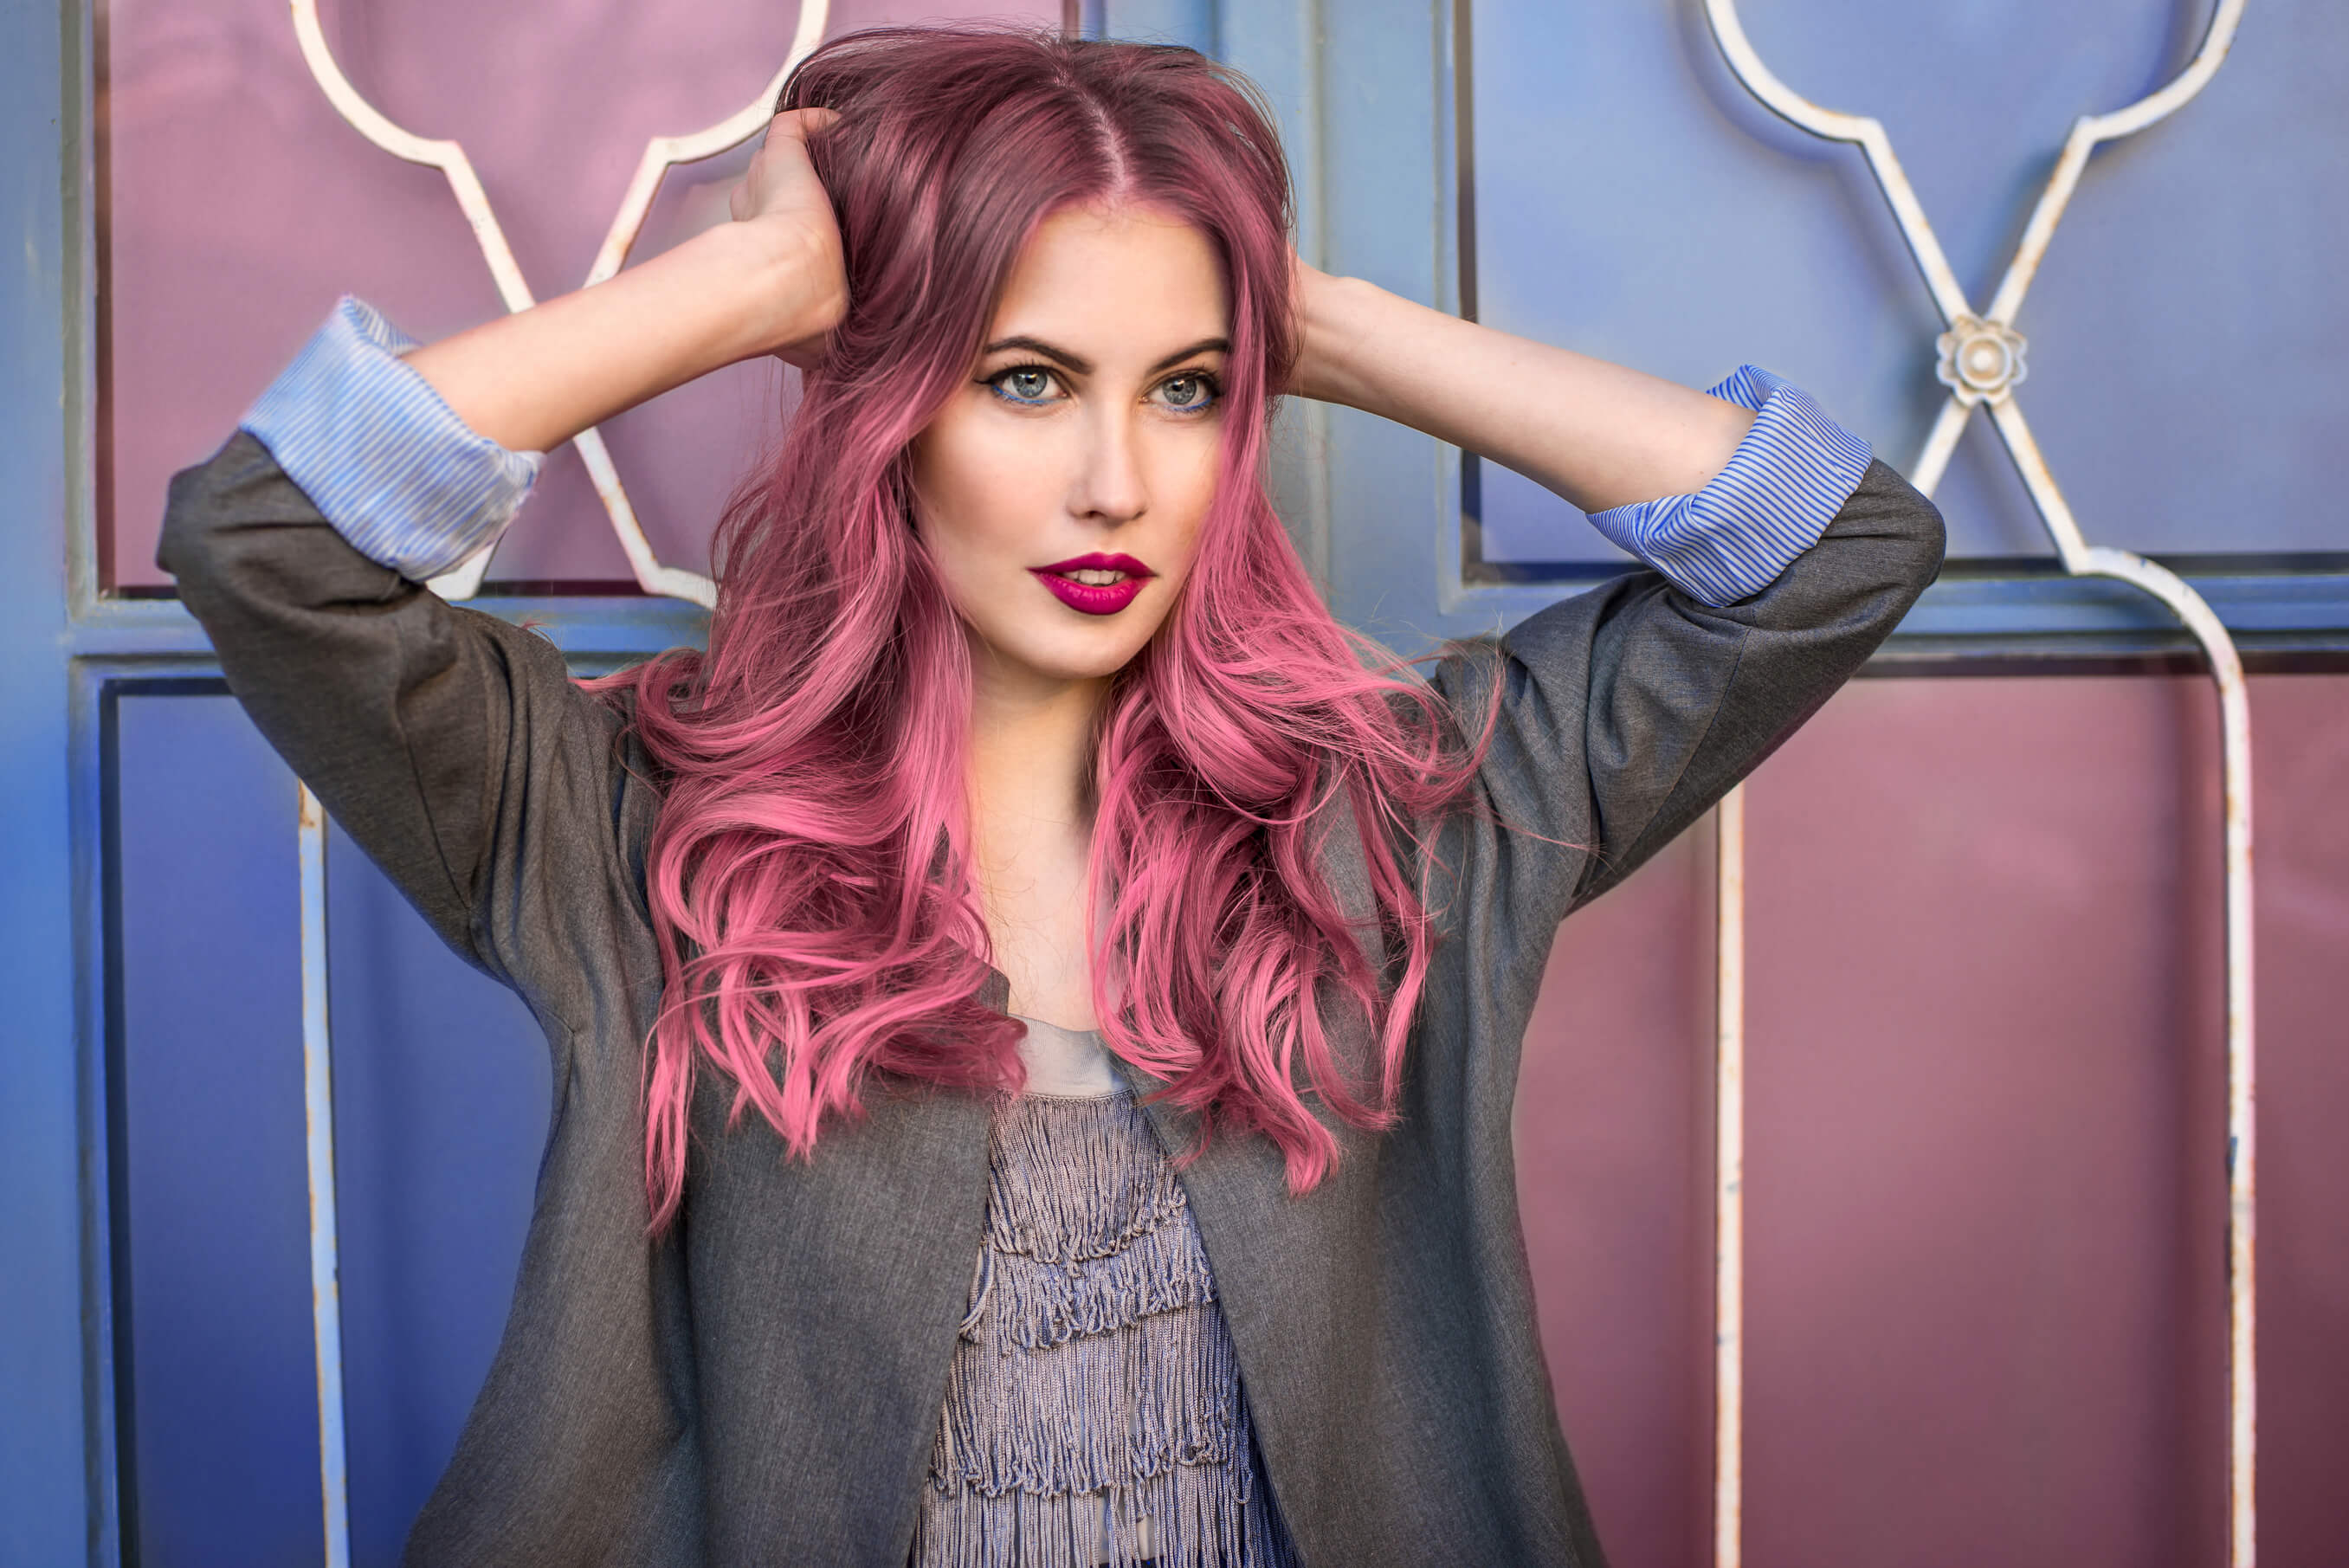 Trendy Hairstyles for College rose hair